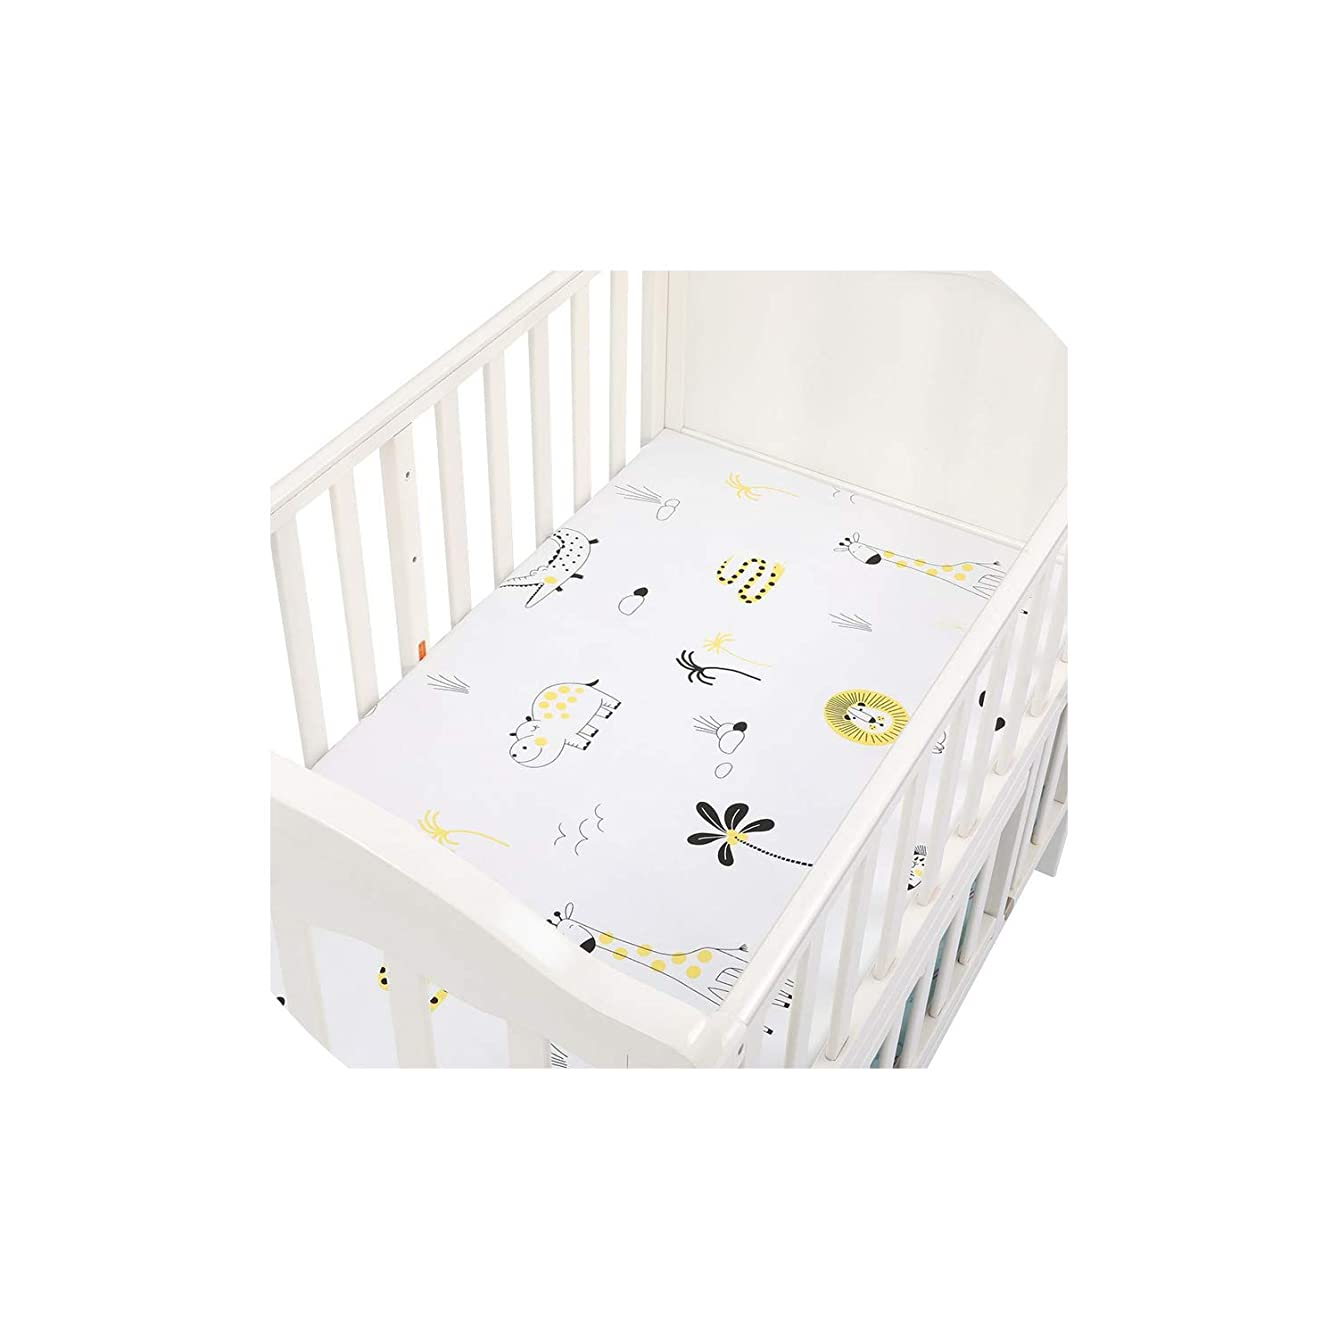 Alex Kuts Cotton Crib Fitted Sheets Soft Baby Bed Mattress Covers Print Bedding Set,25 xgkask819977